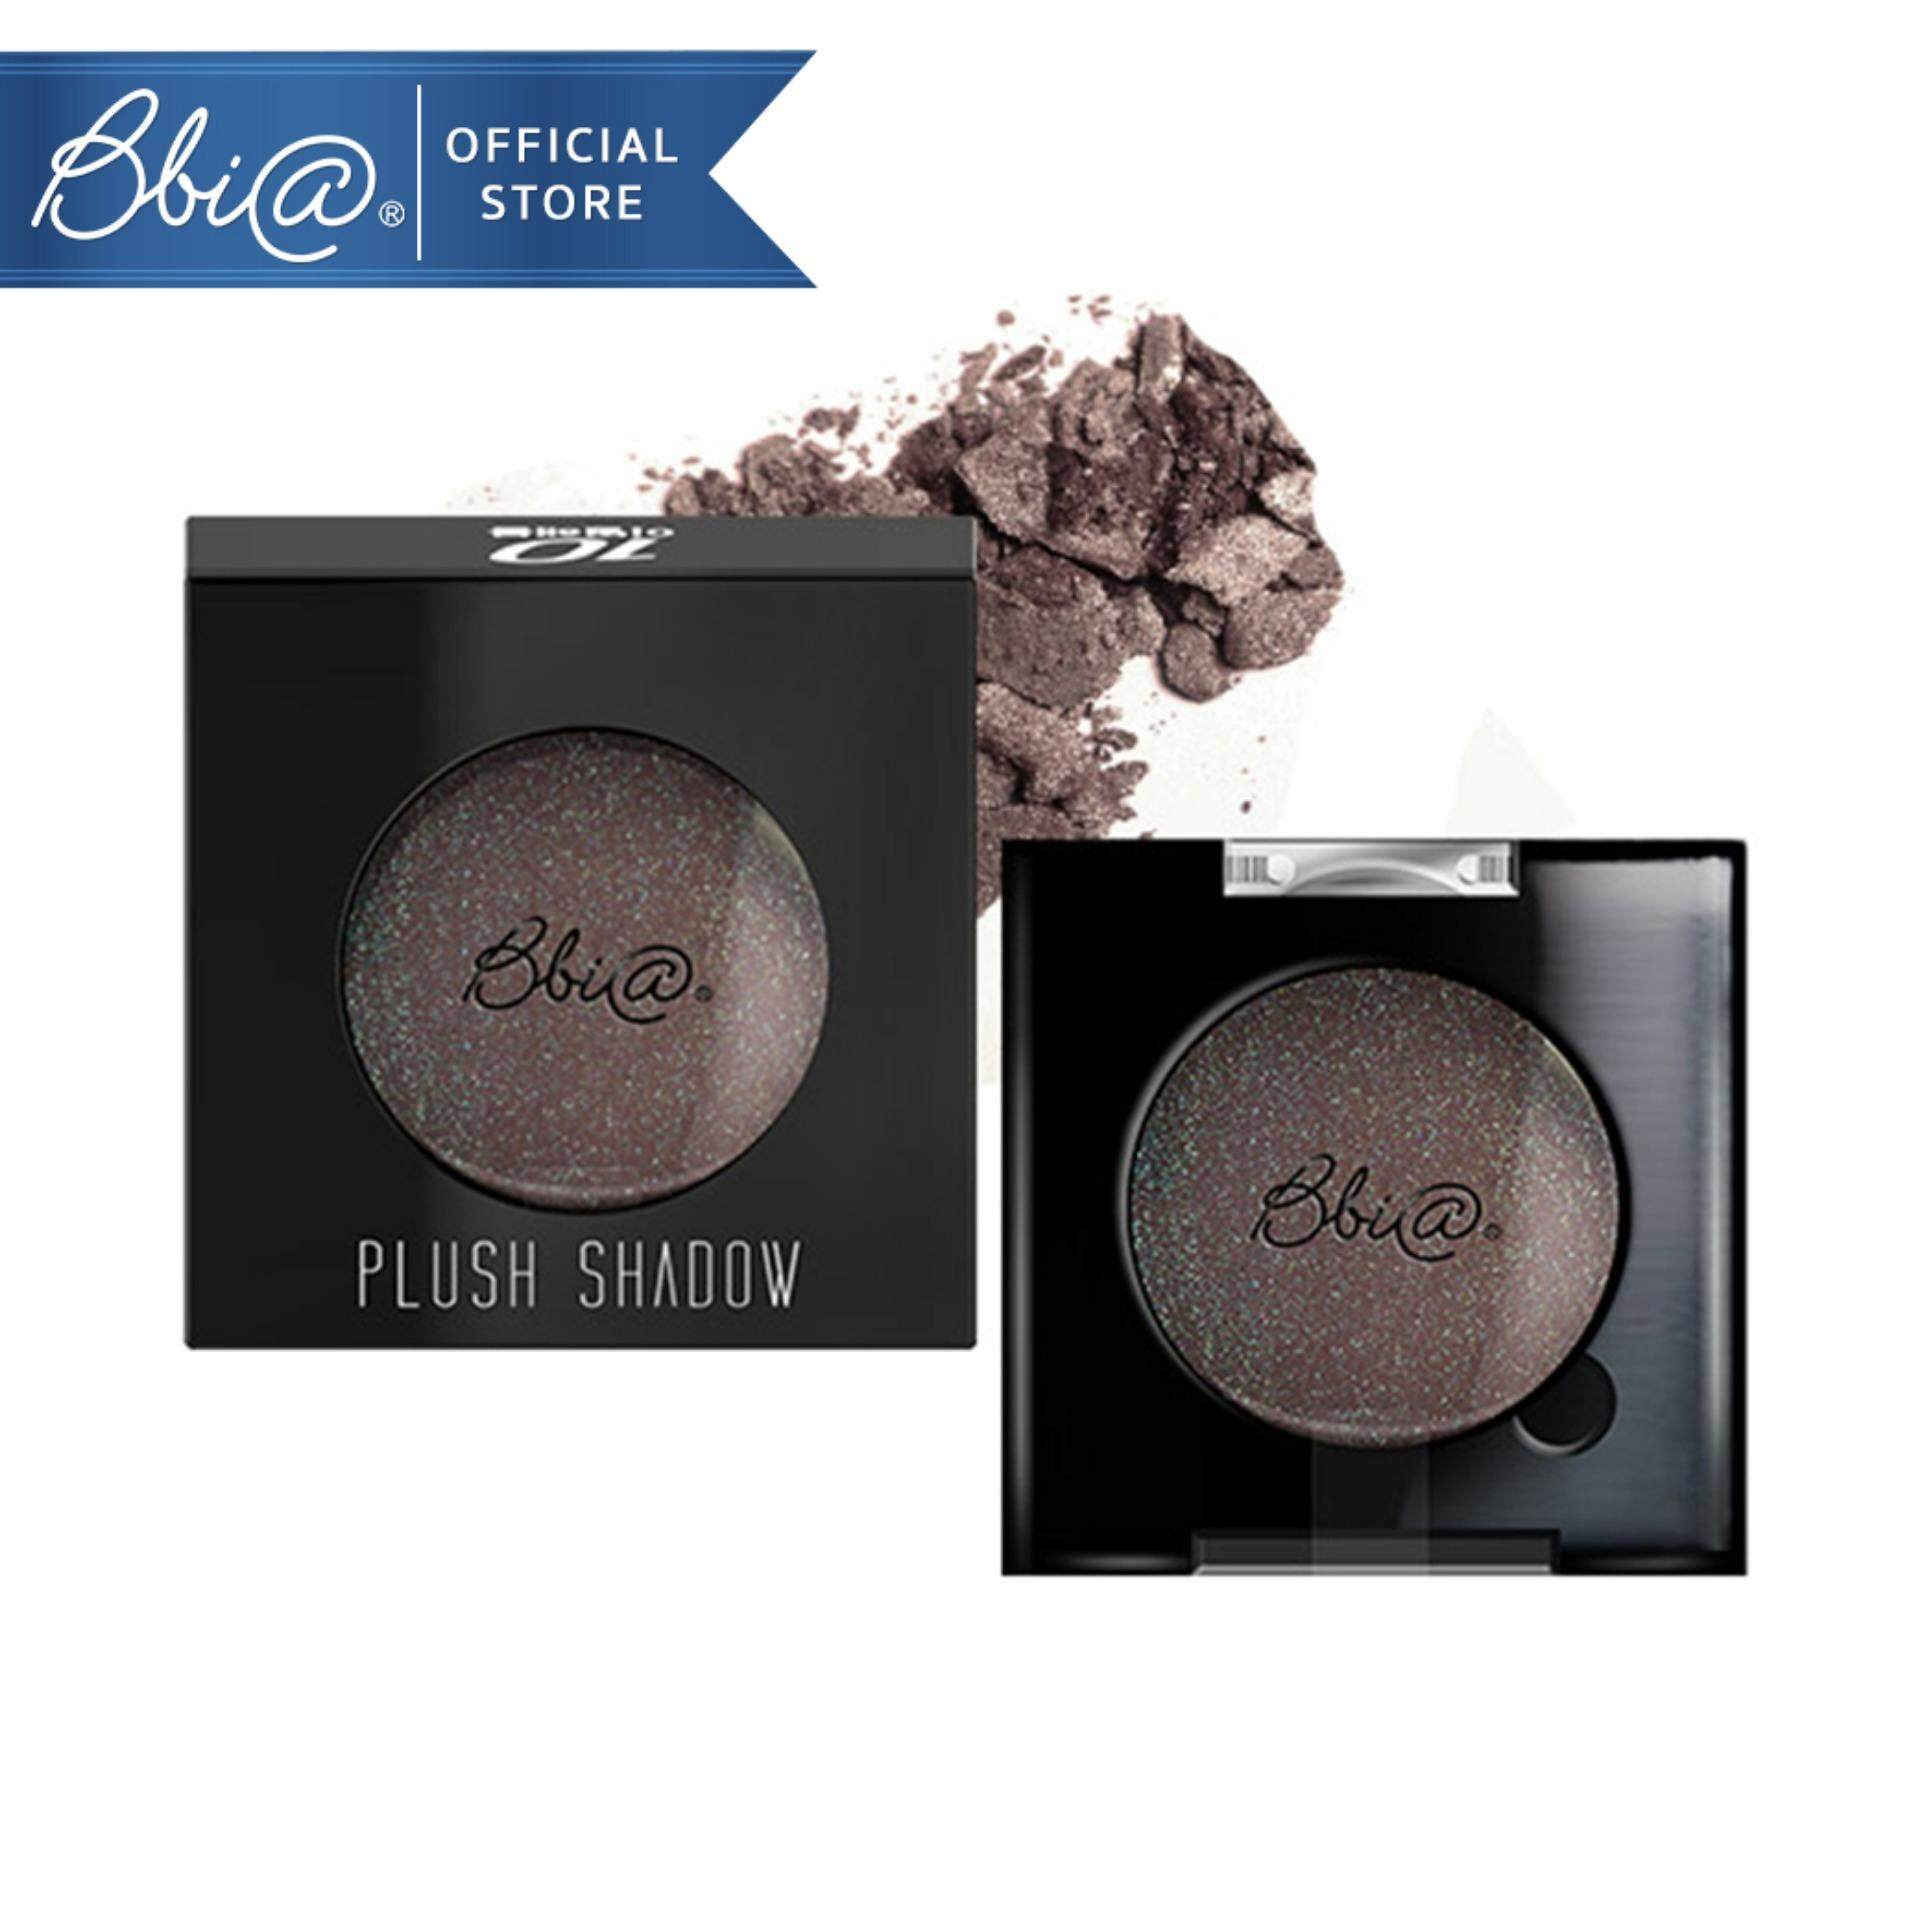 Bbia Plush Shadow - 10 Break Up